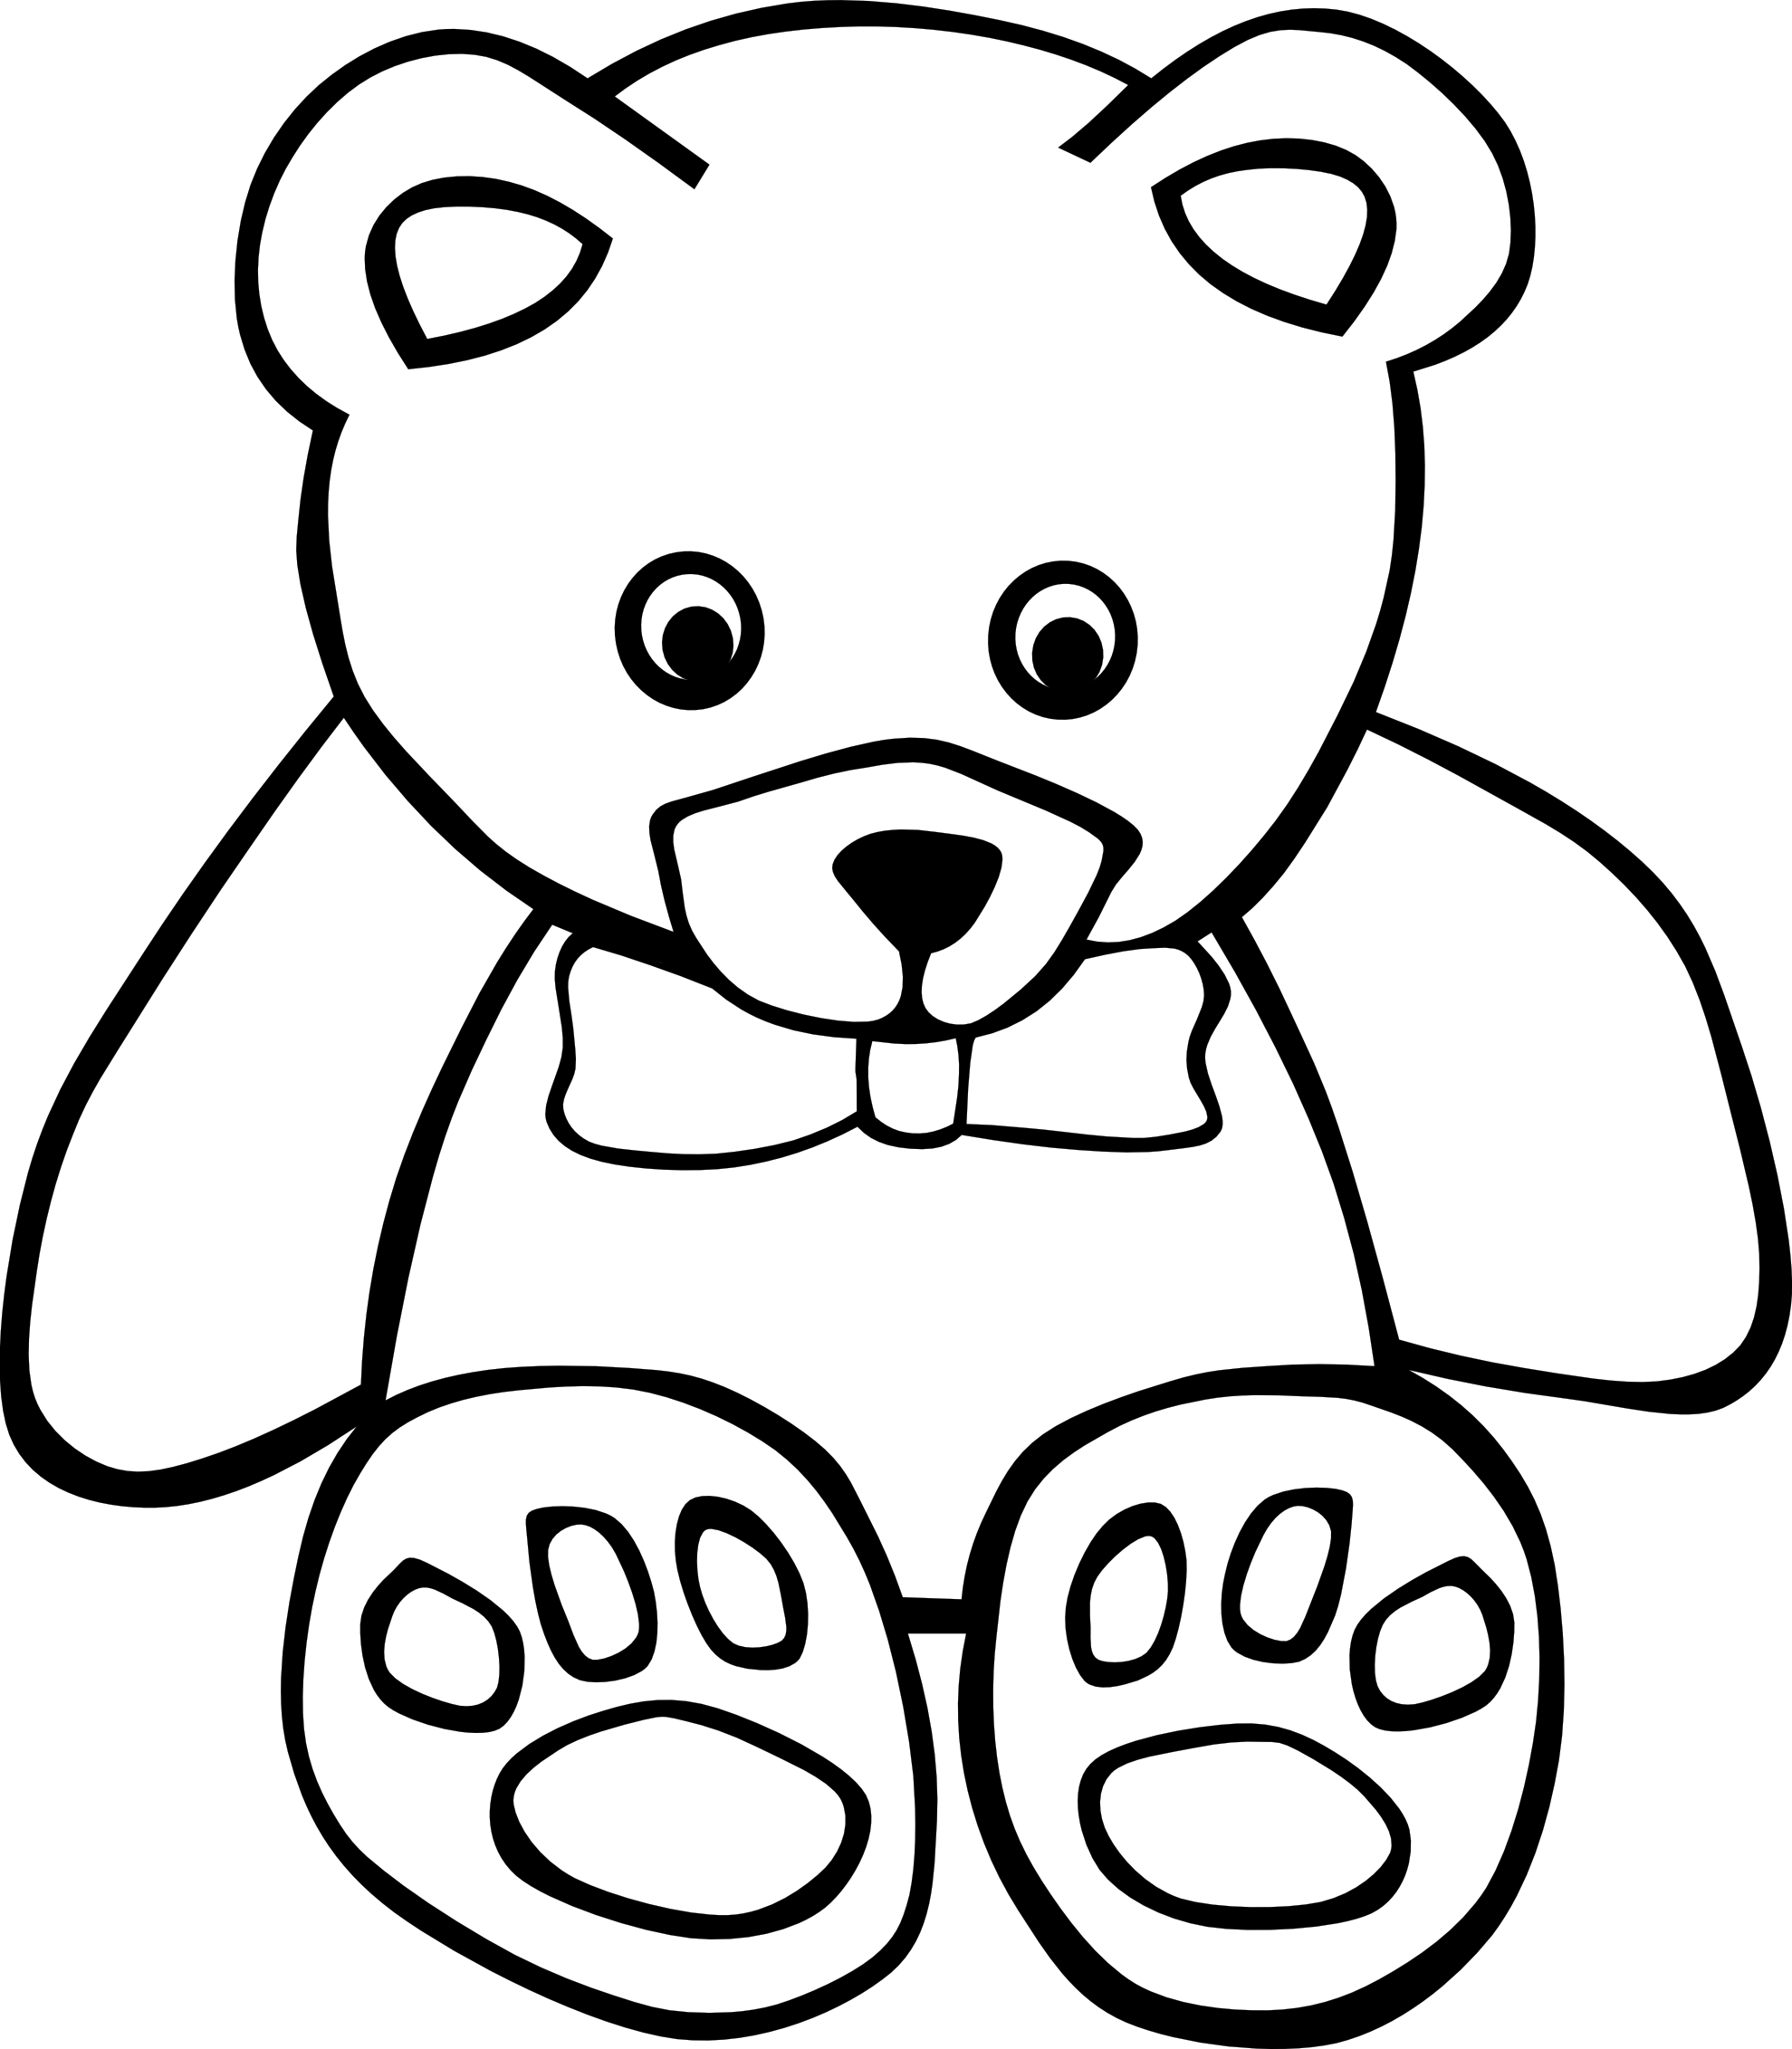 Coloring pages for your. Wow clipart black and white